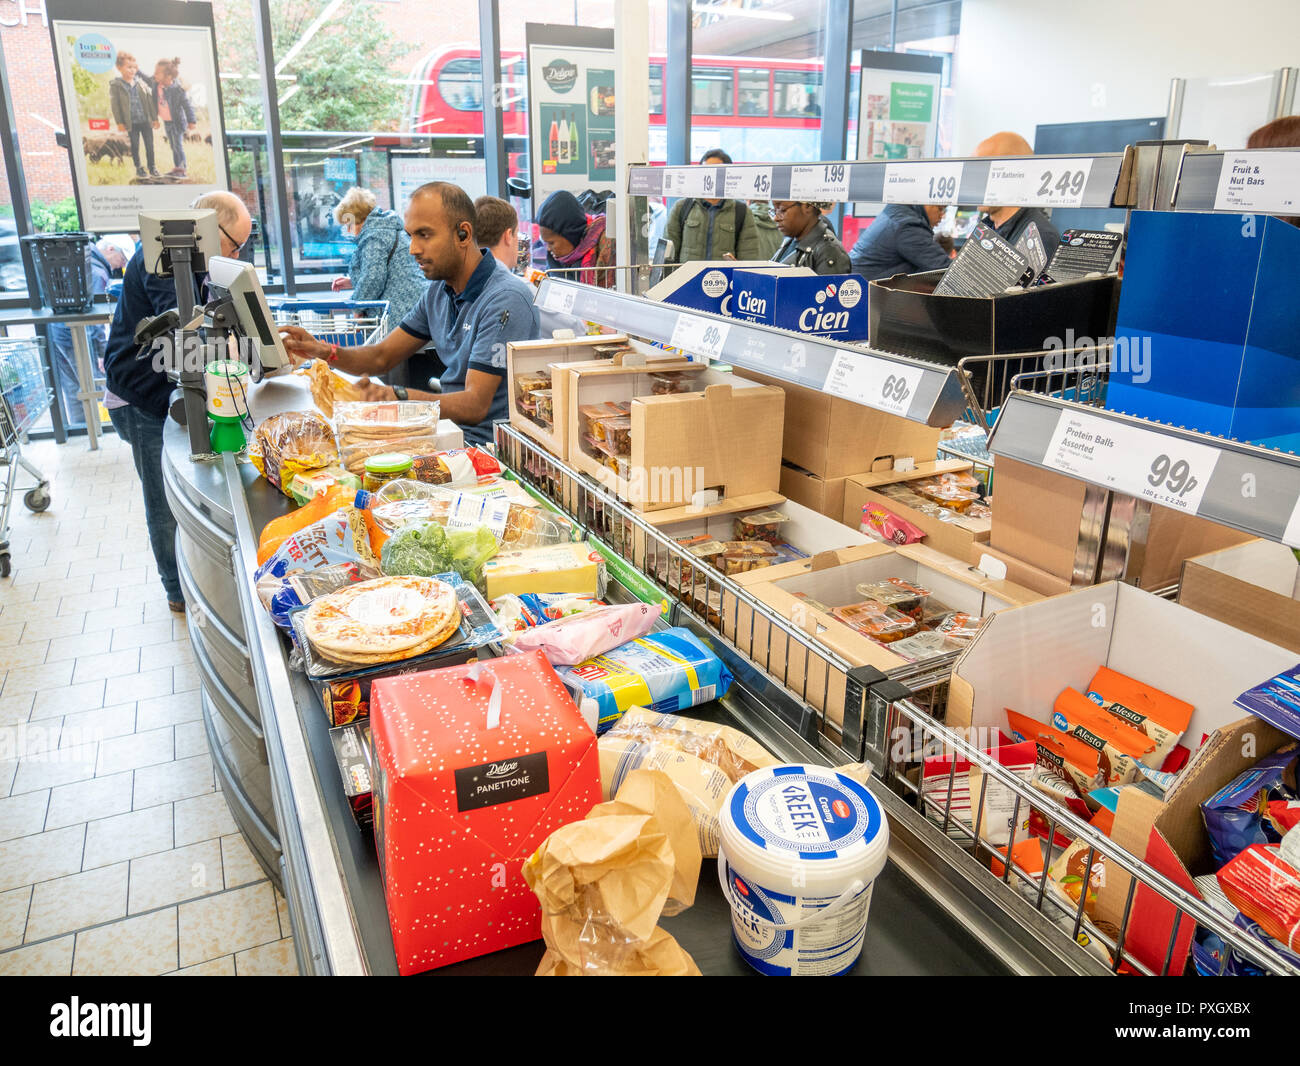 Checkout at Lidl supermarket, UK, London - Stock Image